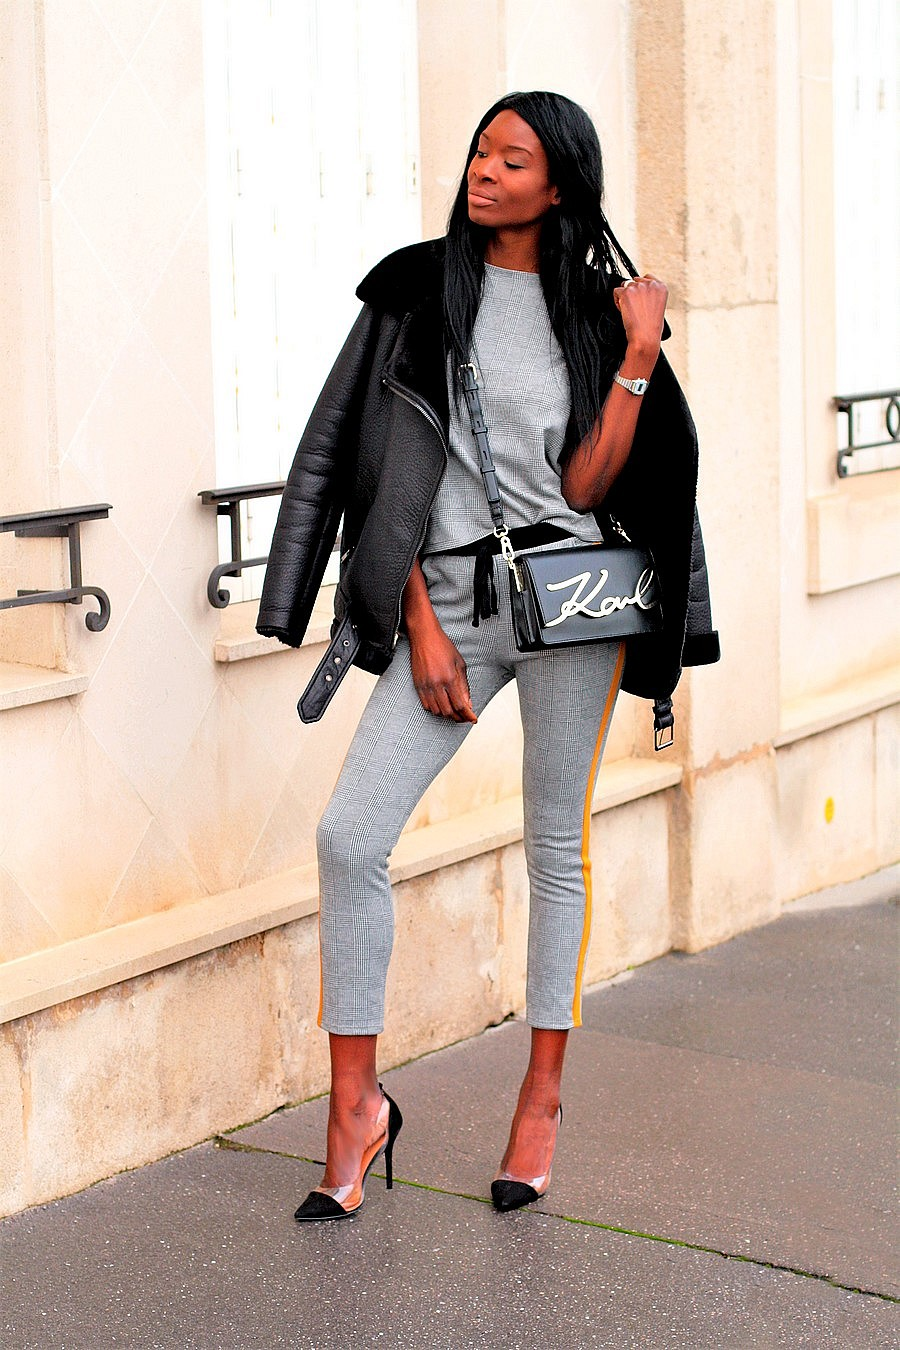 ensemble-carreaux-zara-sac-karl-lagerfeld